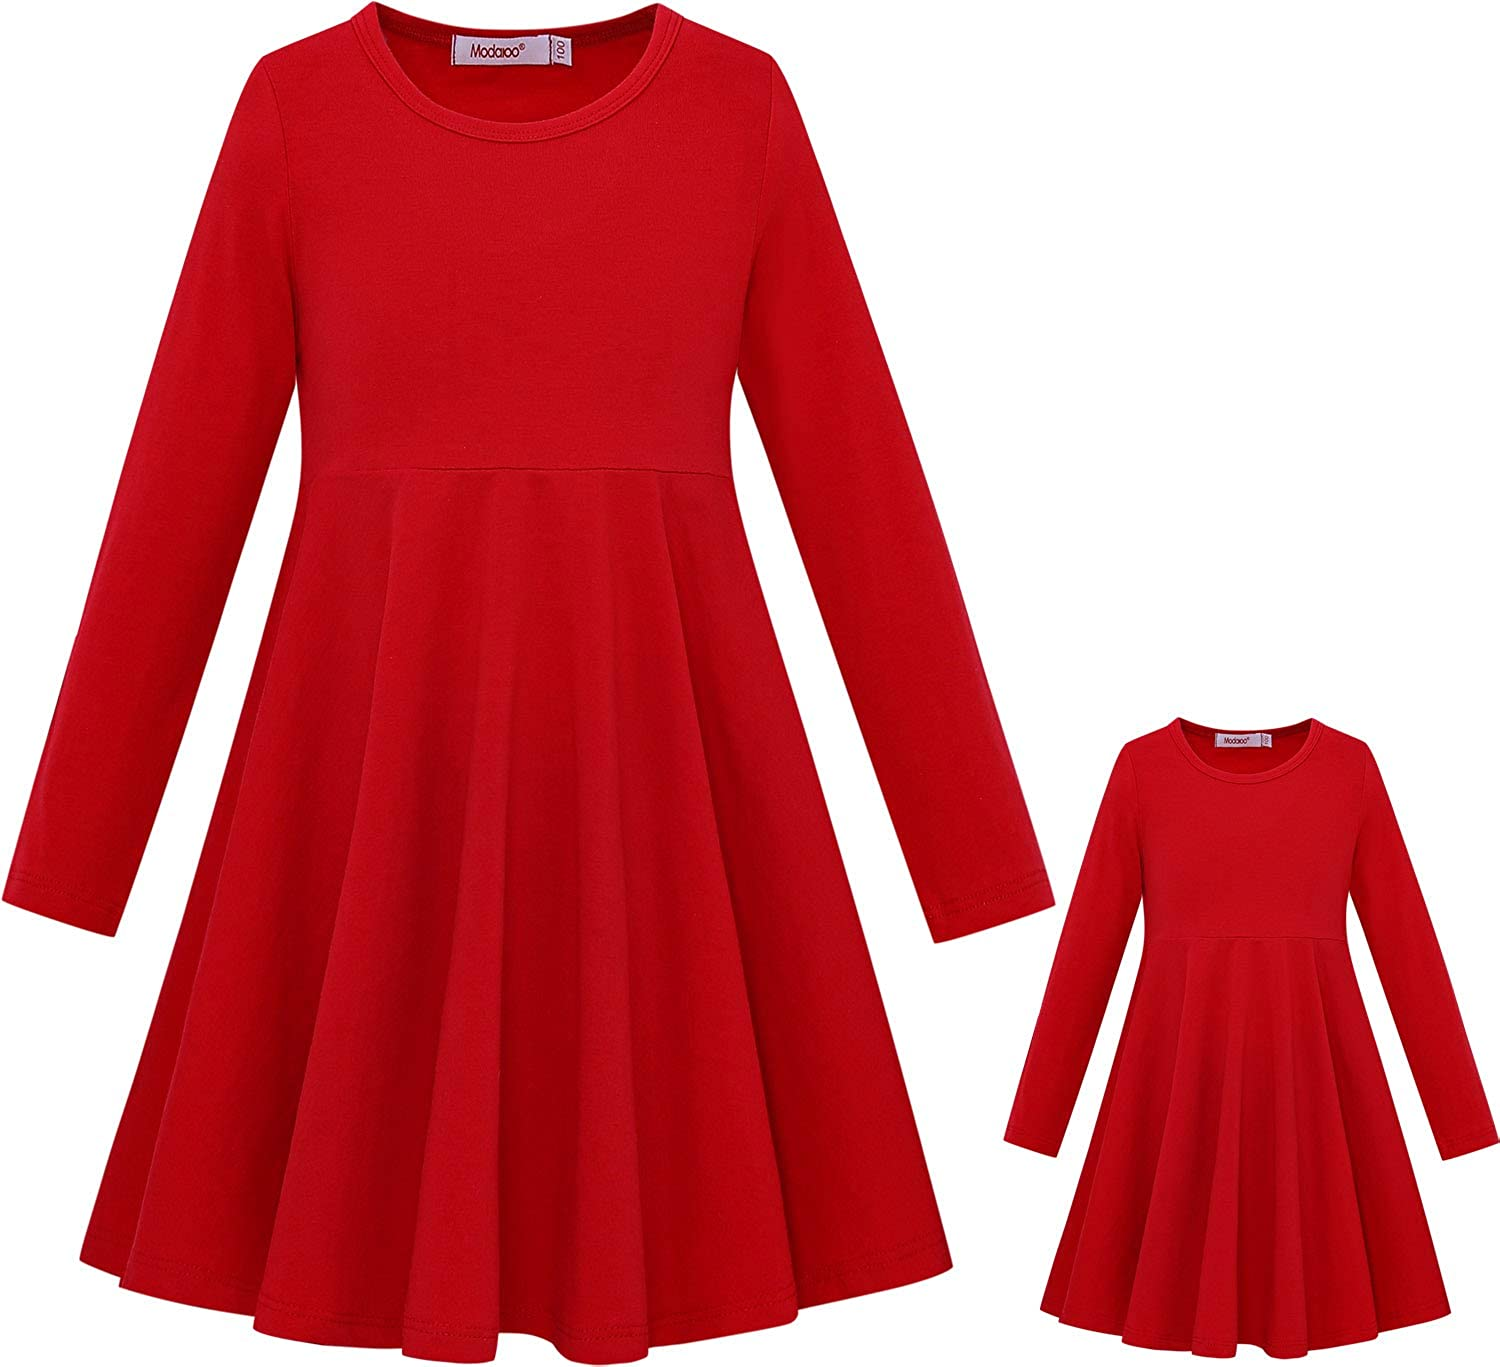 ModaIoo Matching Dolls & Girls Long Sleeve Dress,A-Line Skater Twirly Casual Solid Dresses for Kids